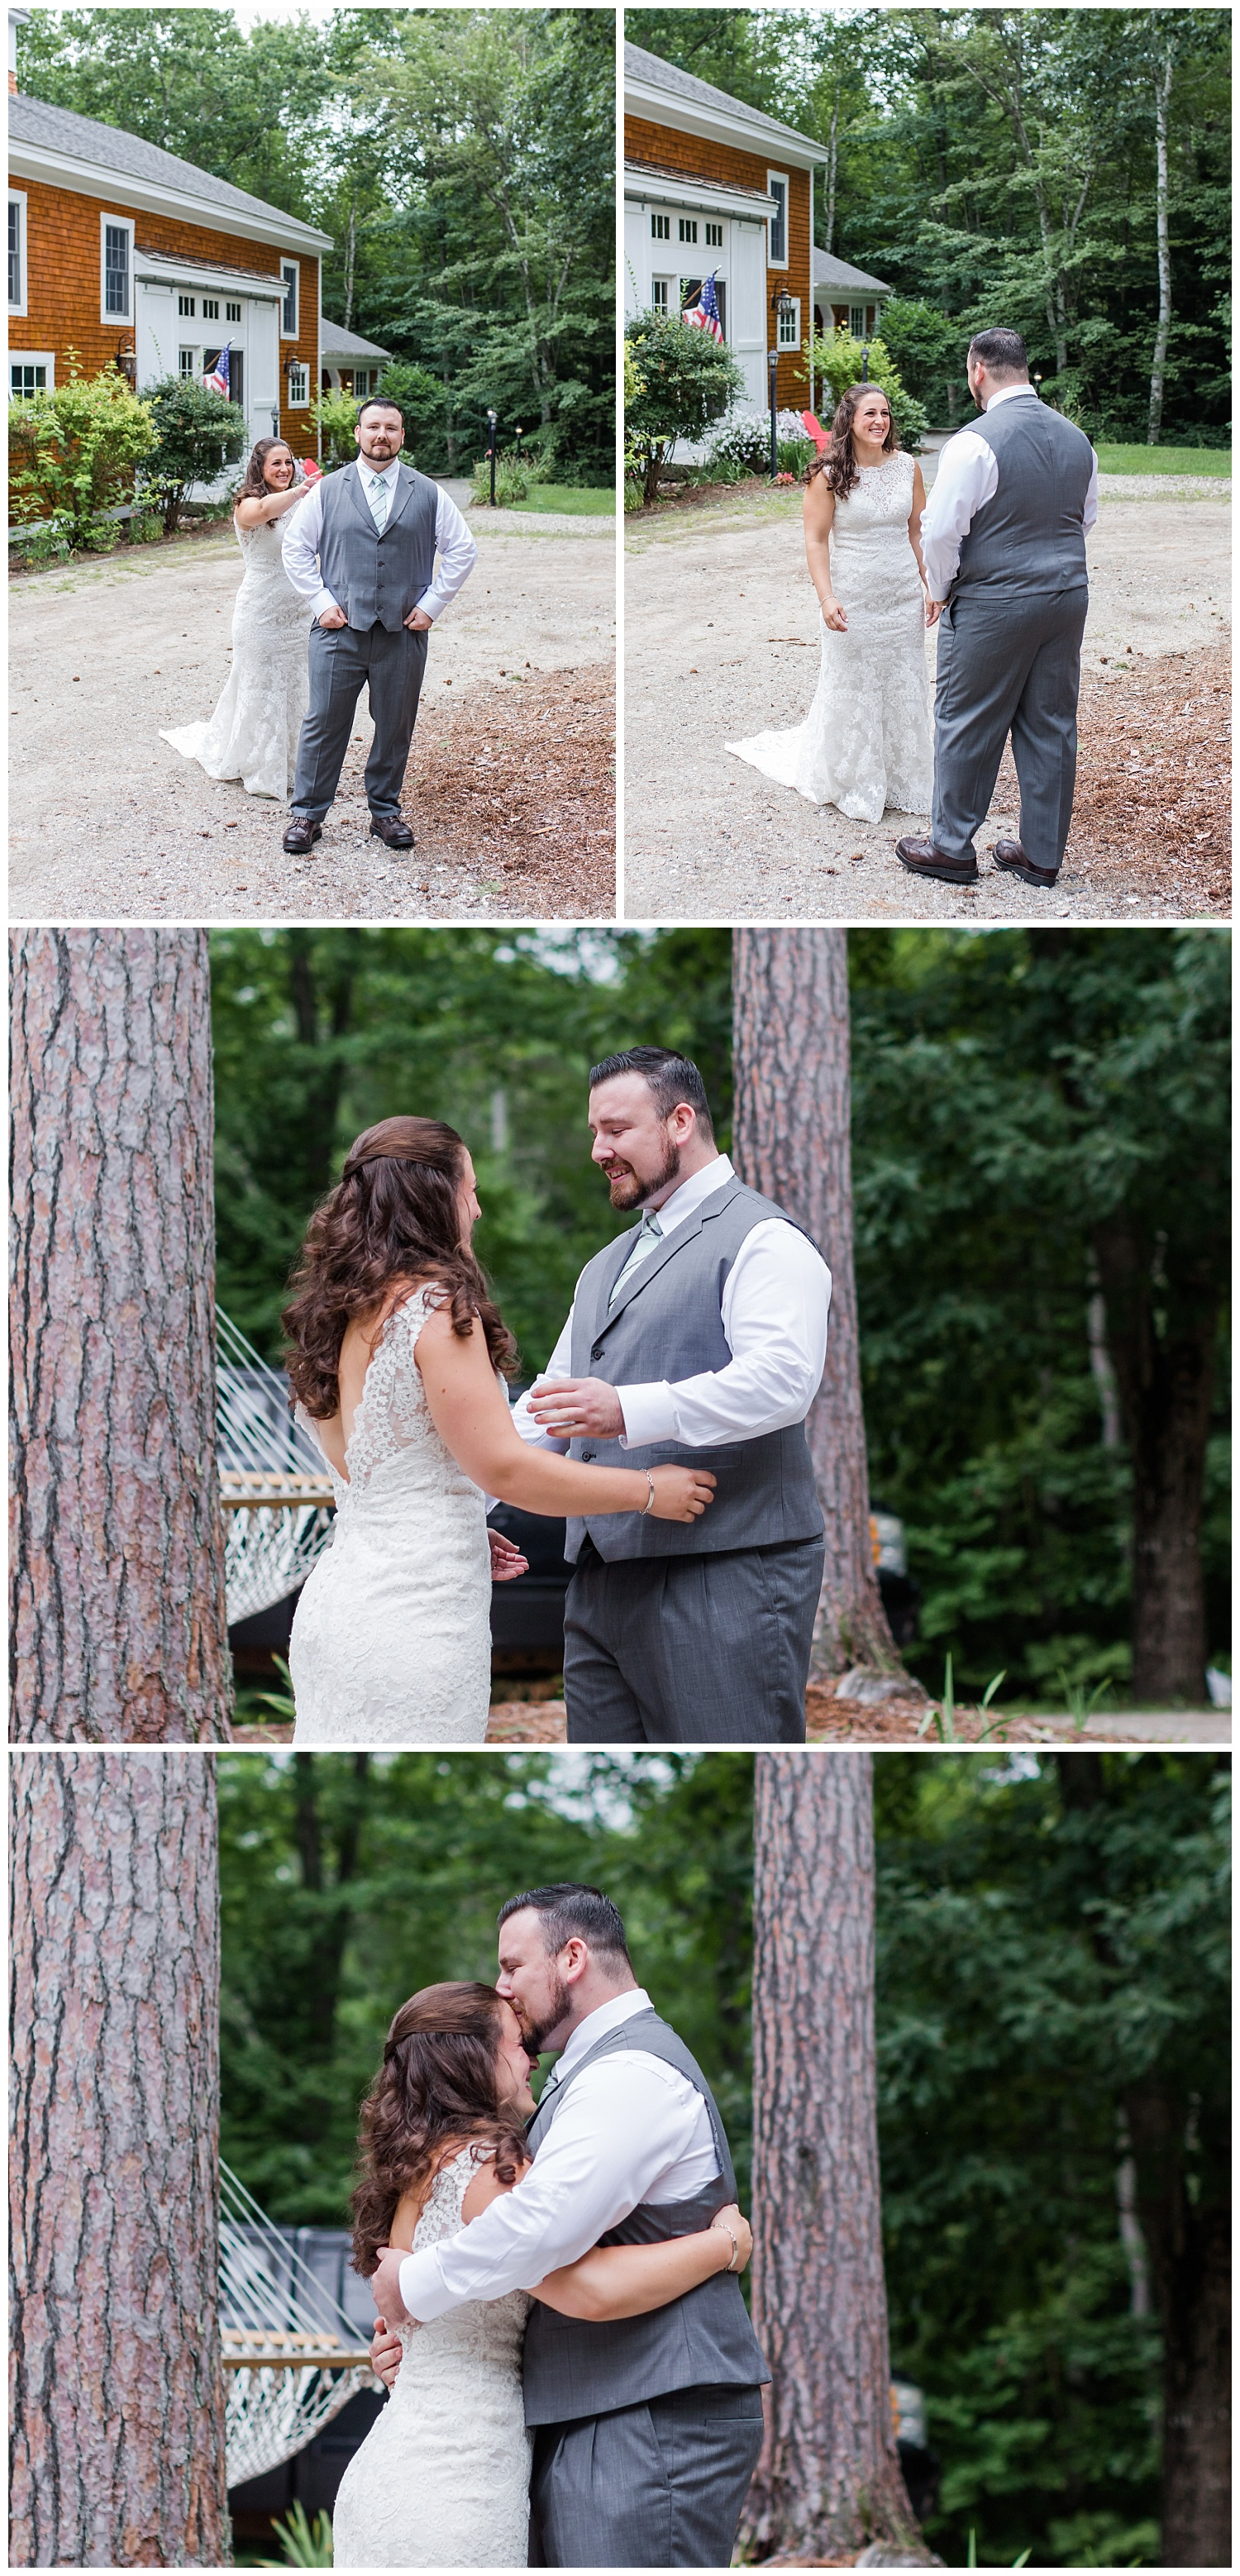 Rustic Maine Wedding - blog-54.jpg